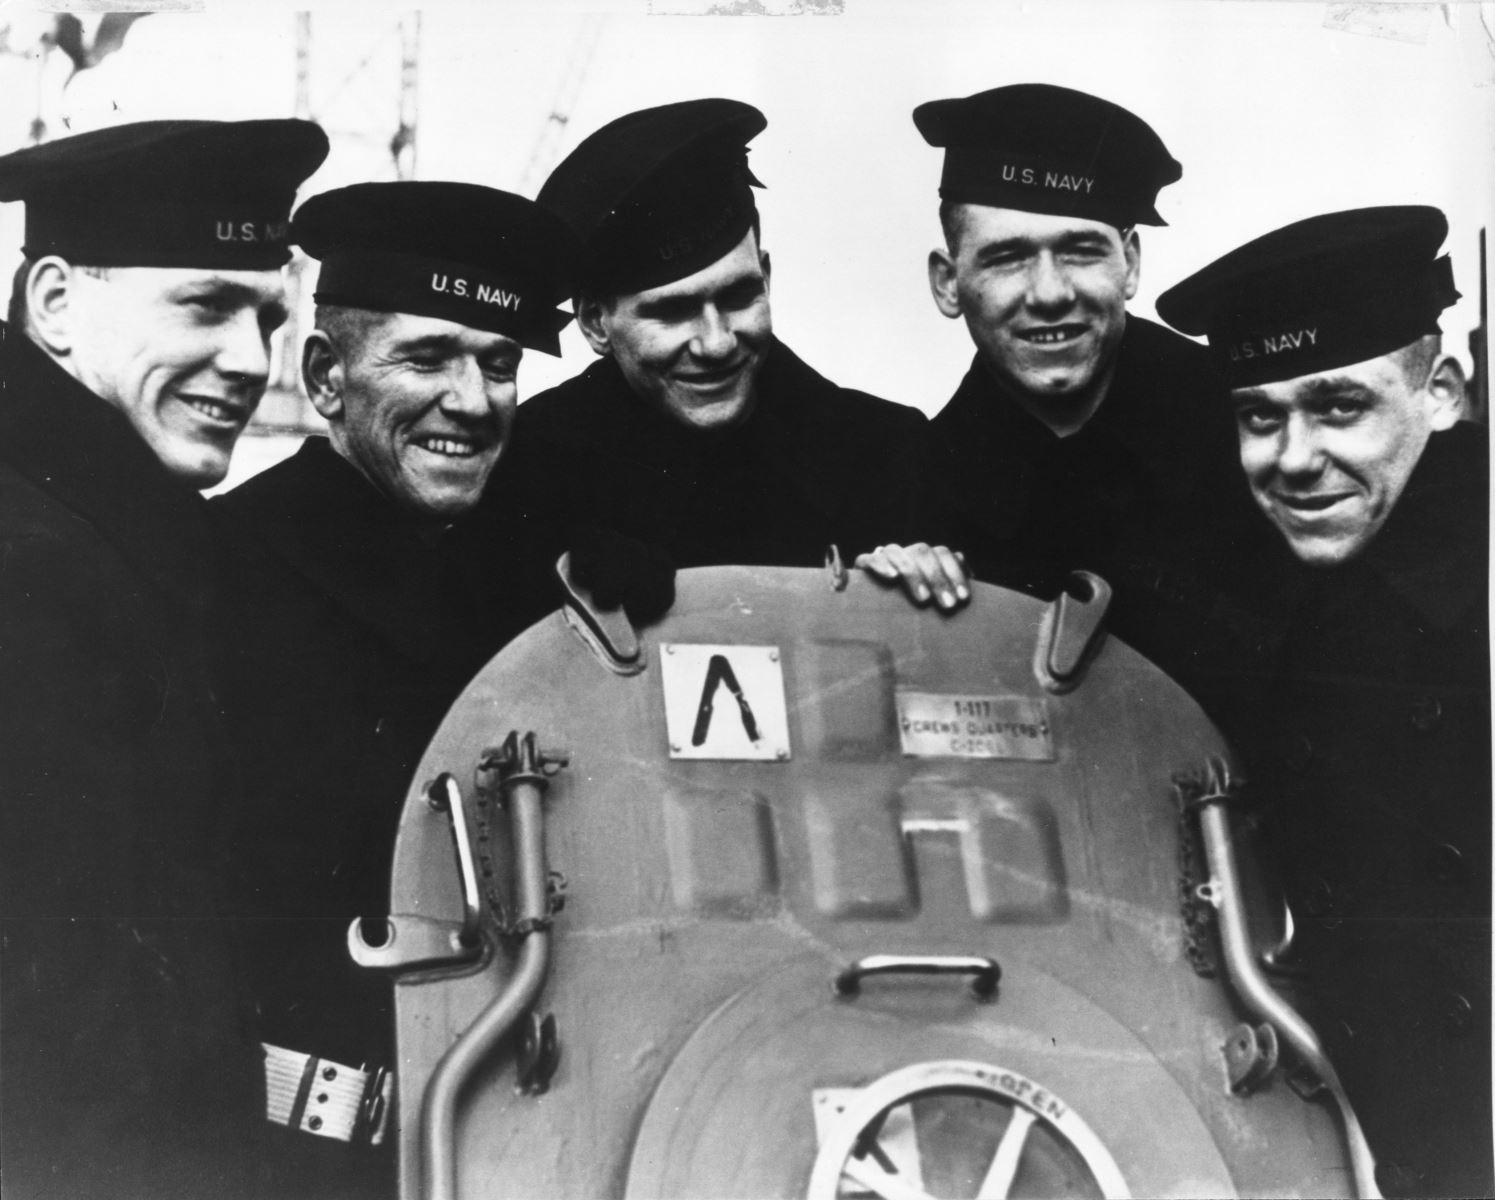 The 5 Sullivan Brothers.